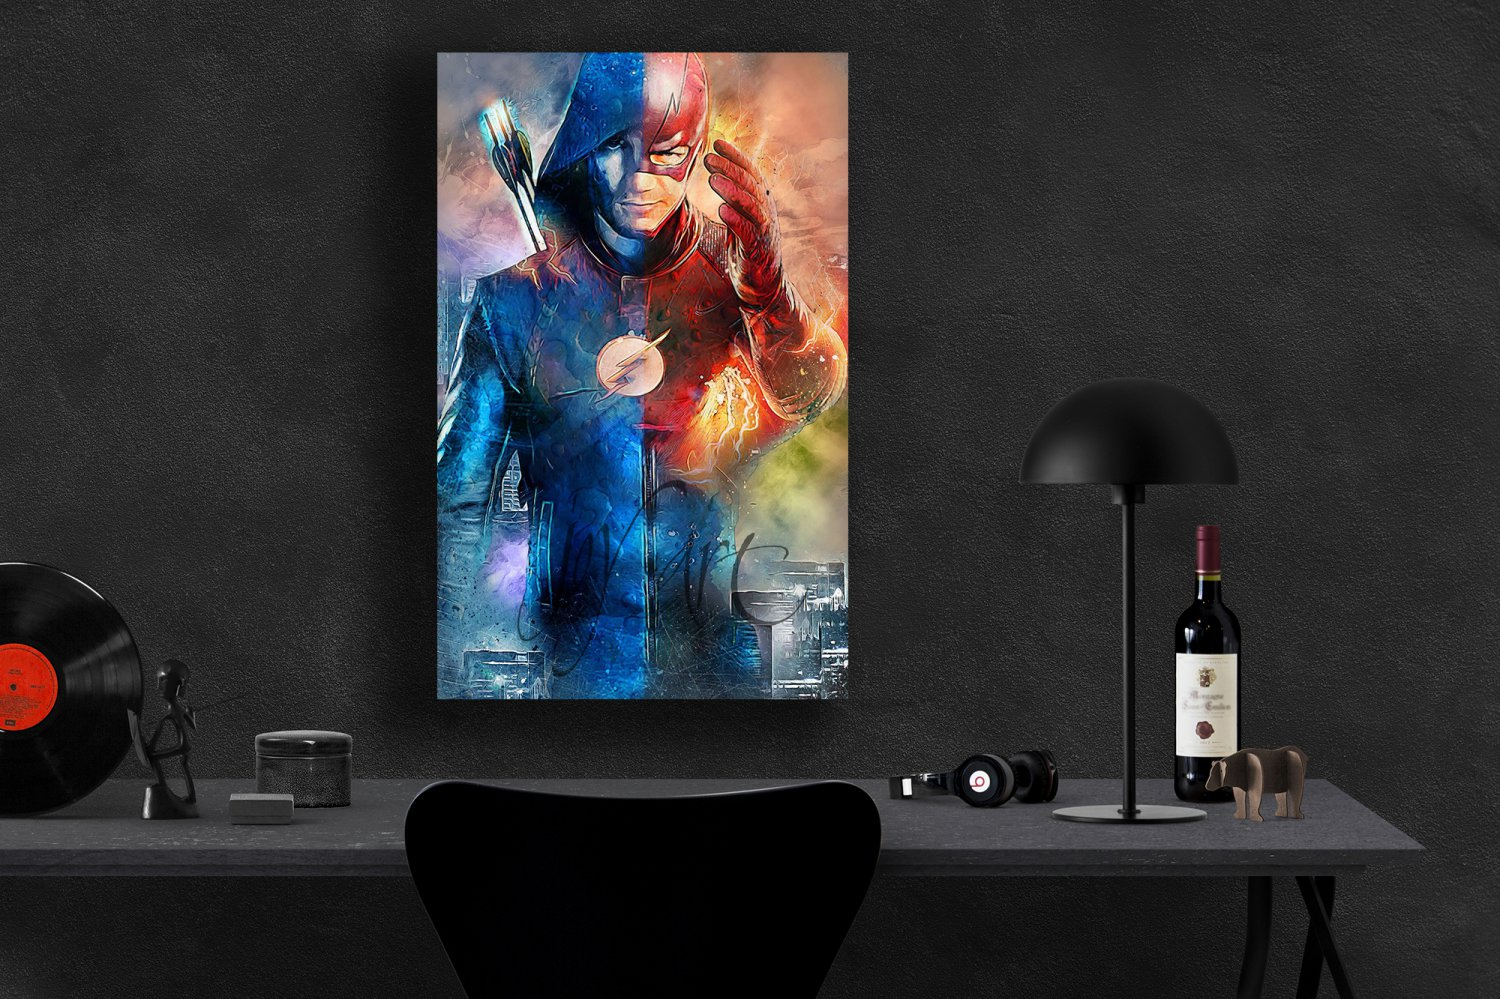 Arrow, Flash, TV Series   13x19 inches Poster Print